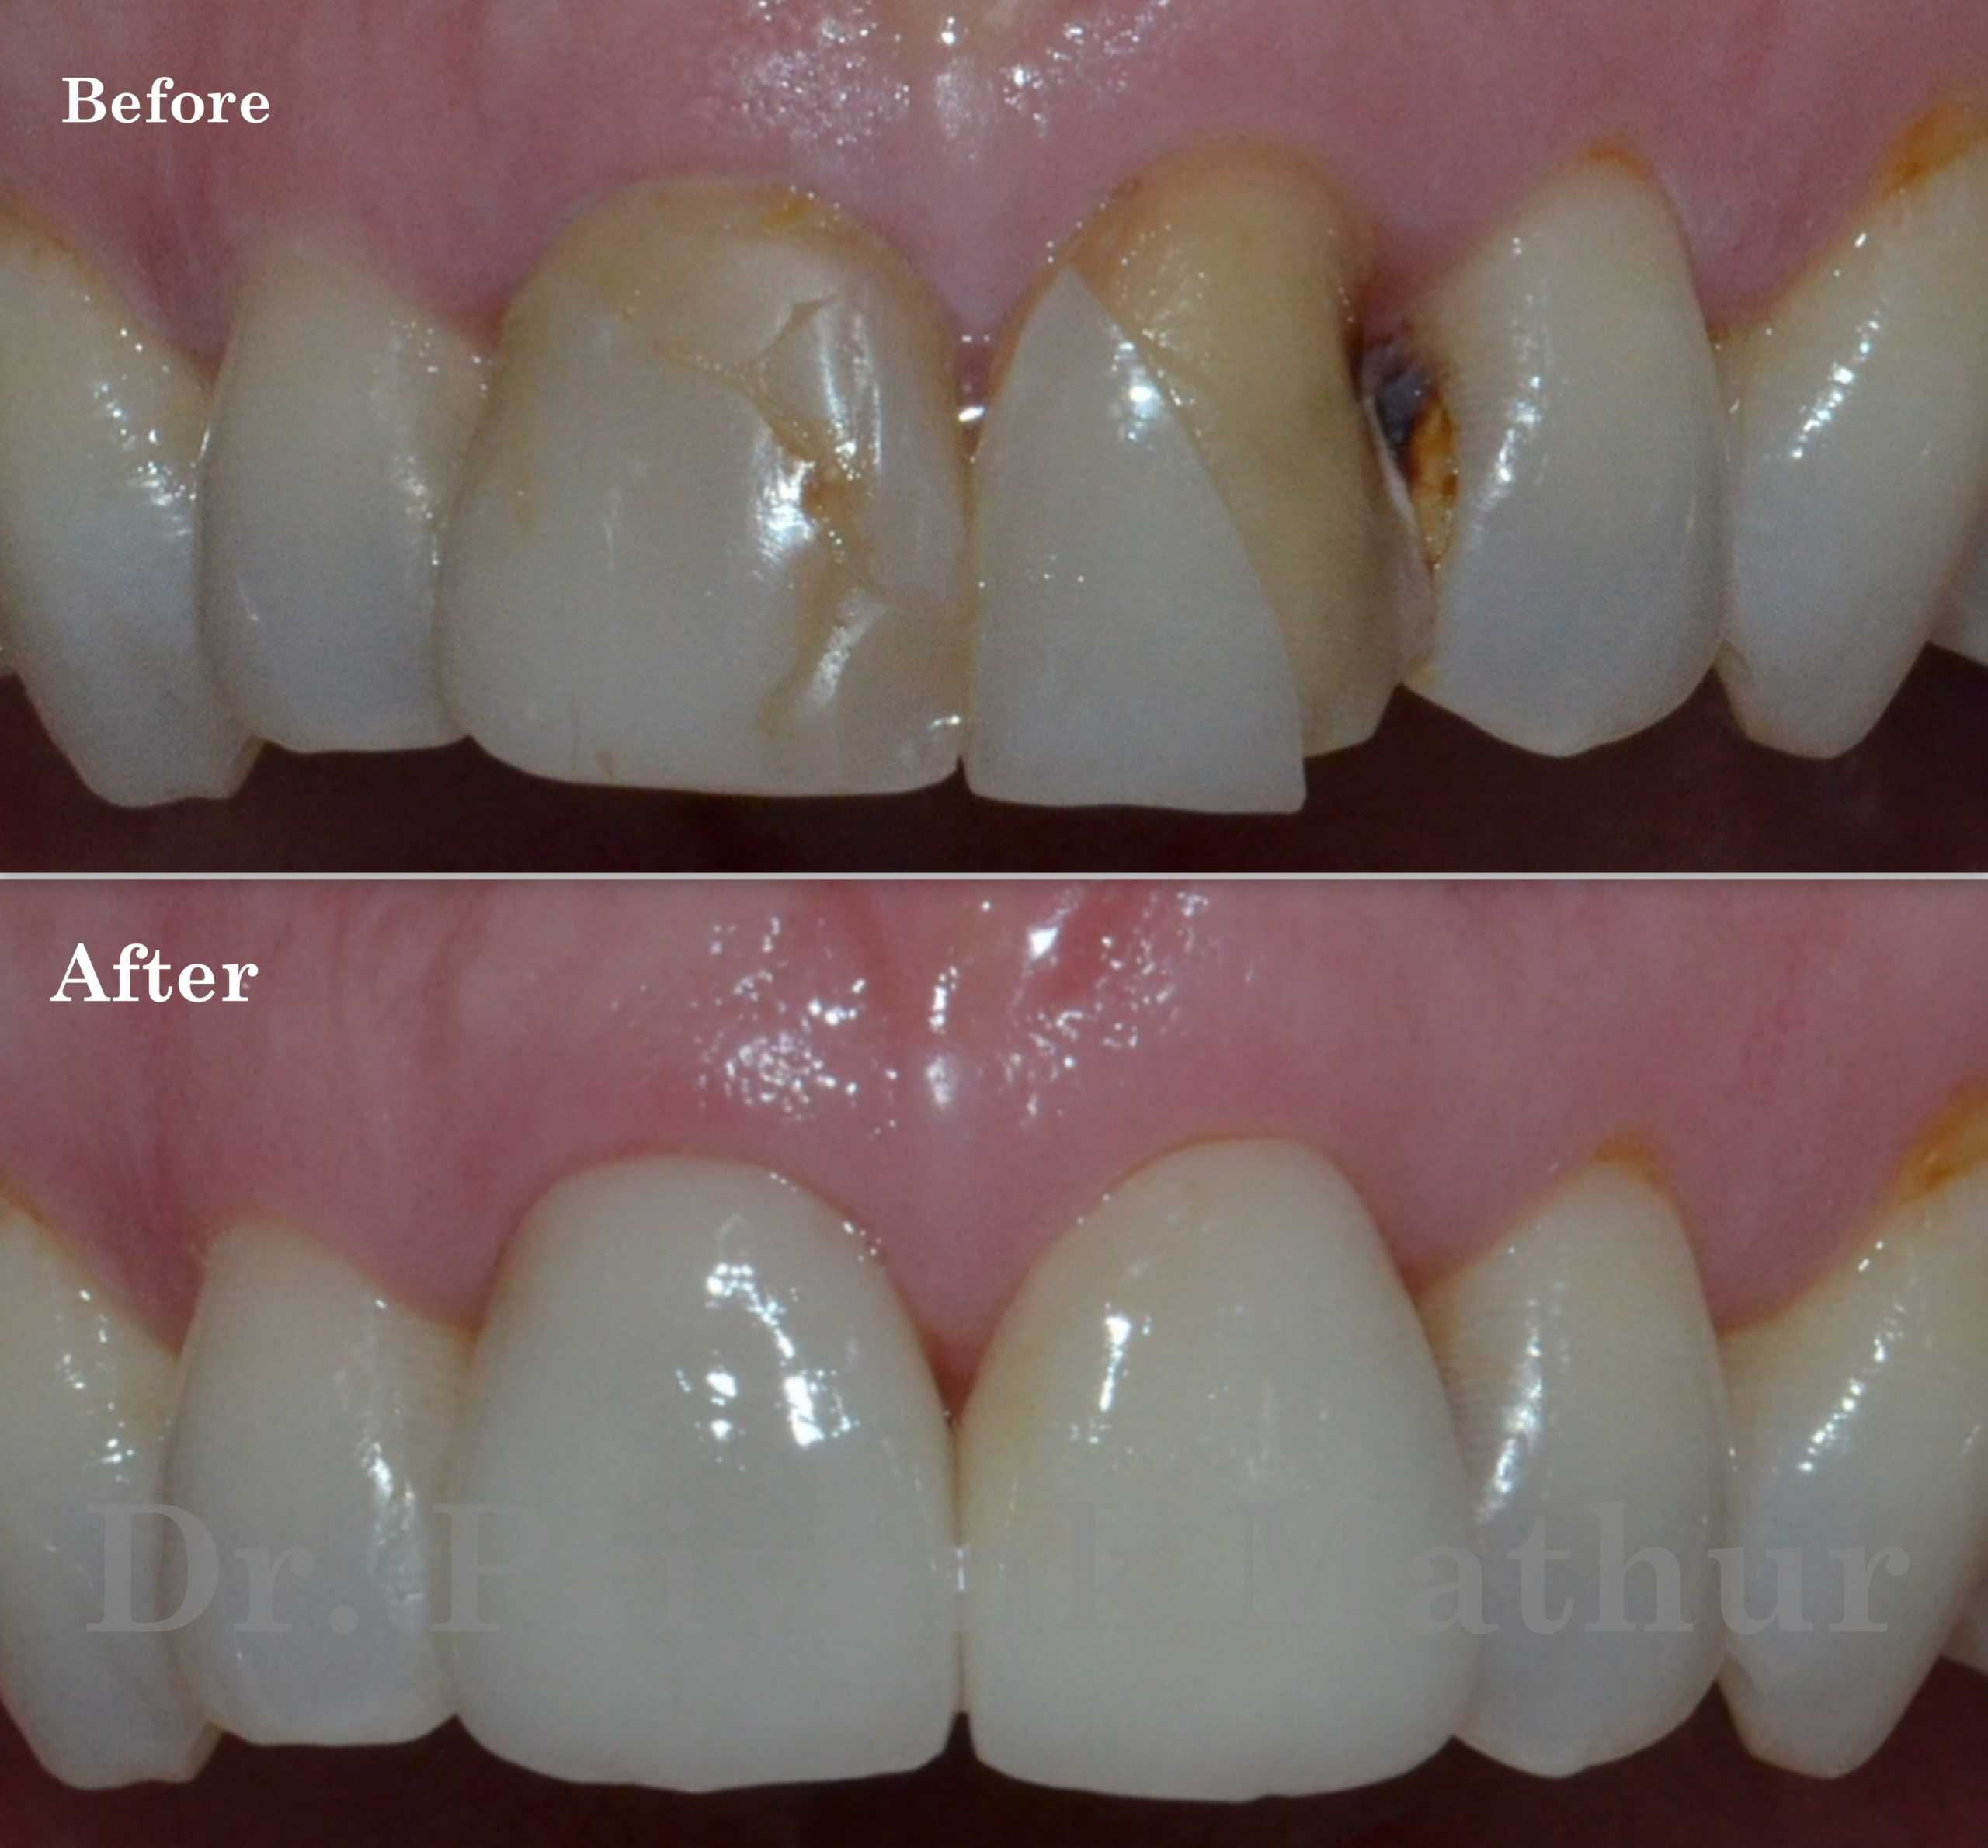 Dental crown to repair an old fractured cap